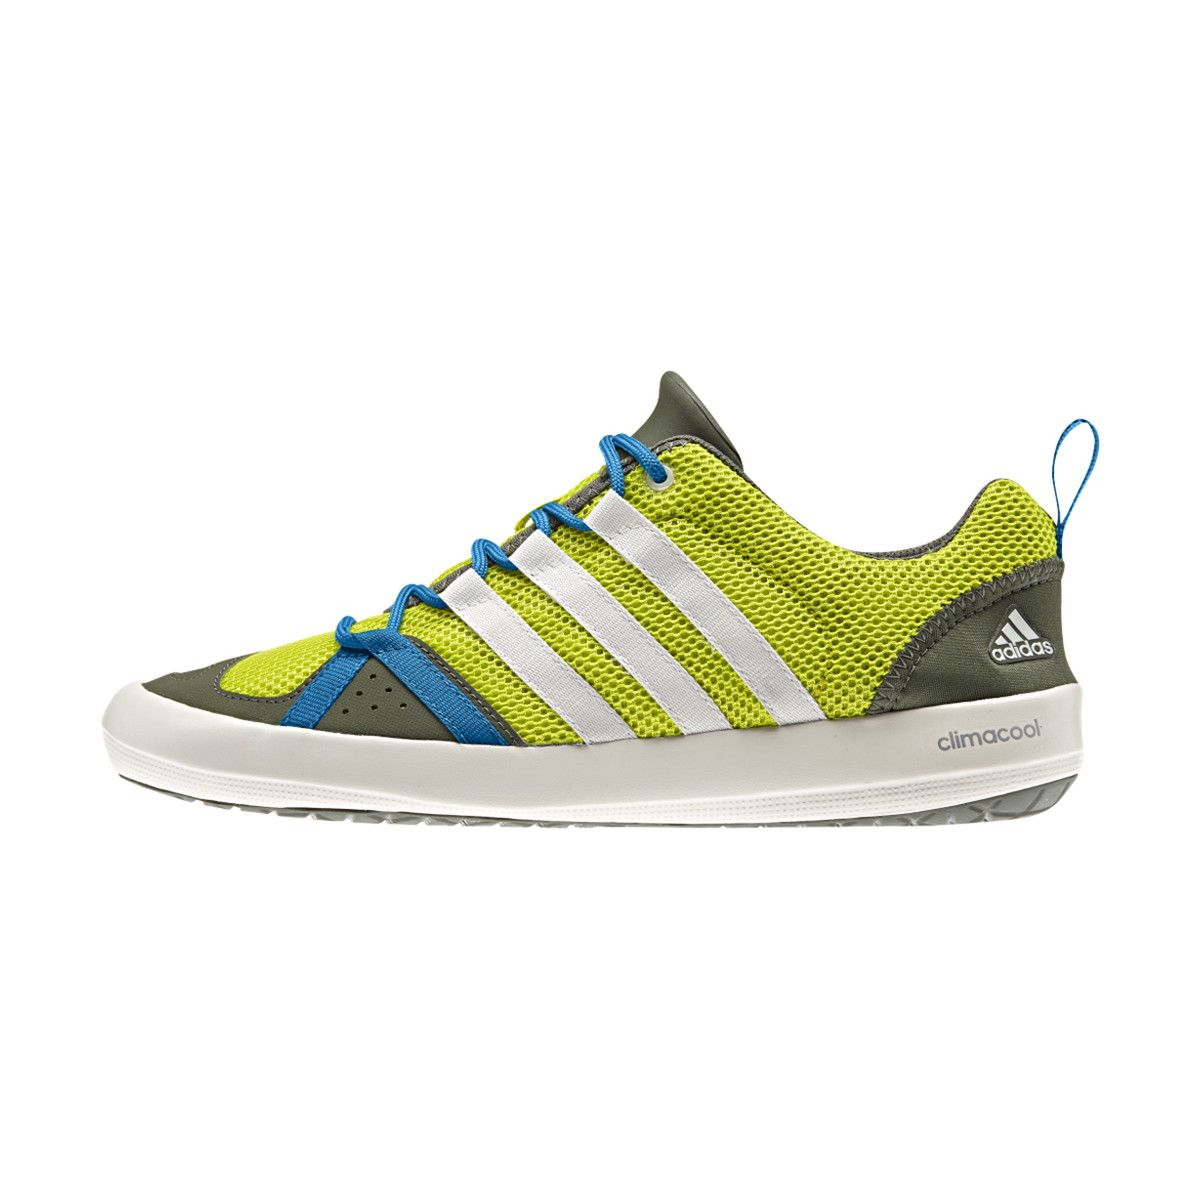 Adidas Outdoor ClimaCool Boat Lace Water Shoe - Men's Semi Solar Yellow/Chalk  White/